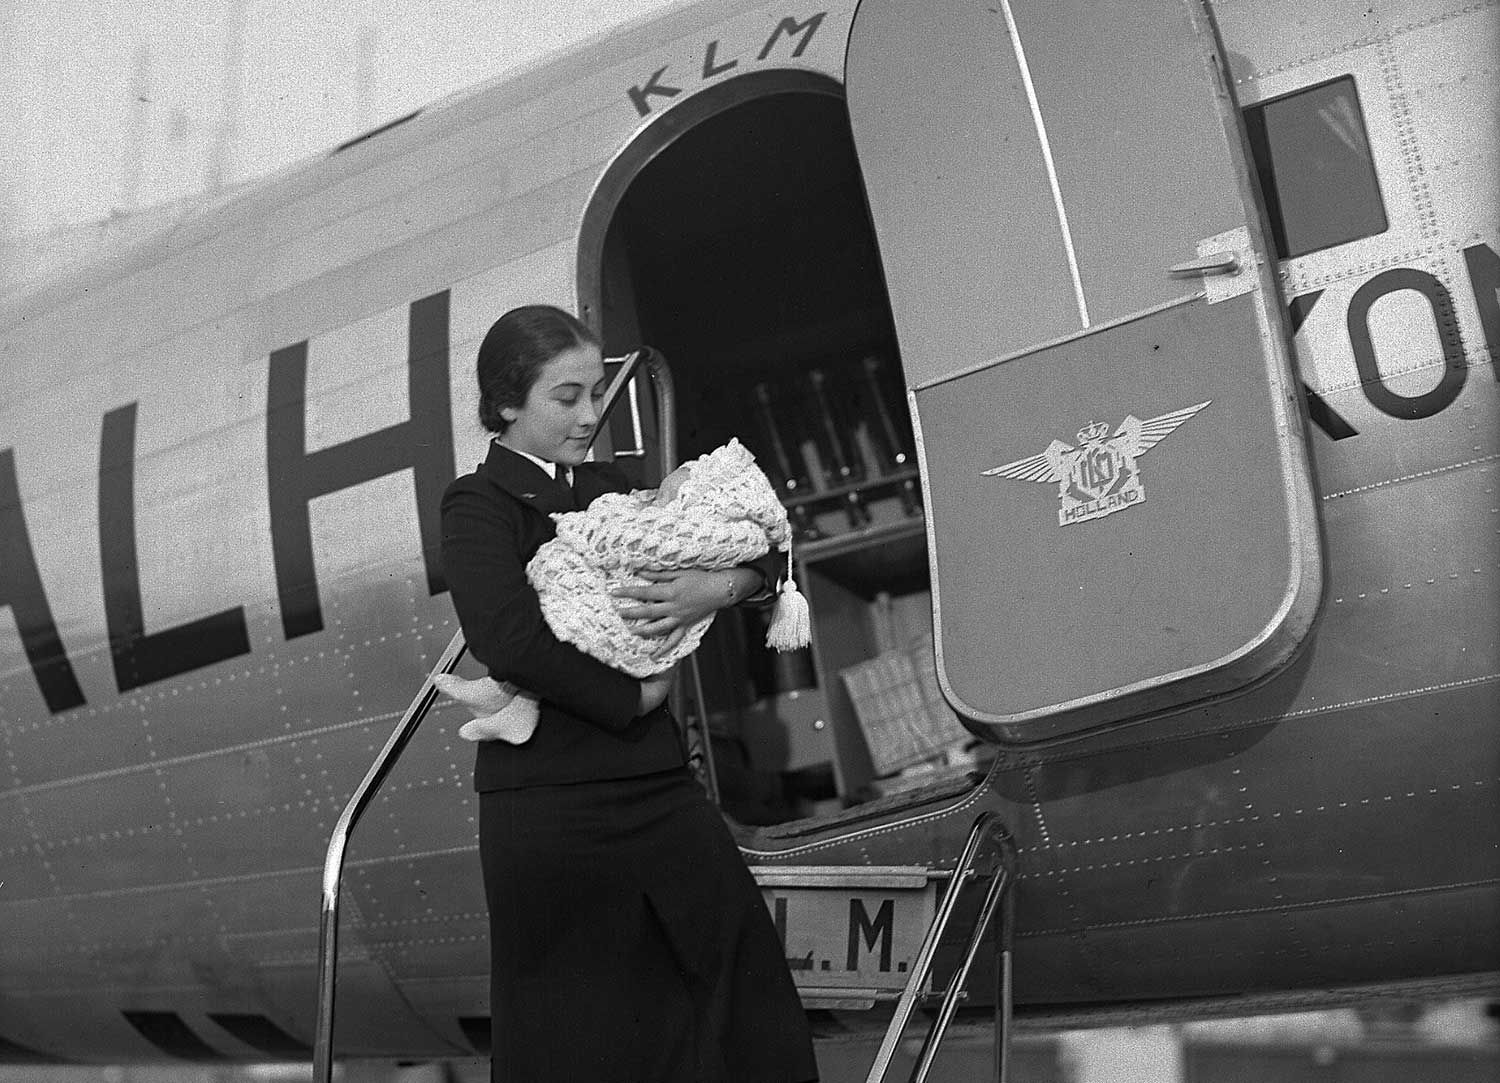 Klm Stewardess Early 1940 S With Infant Timers Vintage Airplanes Stewardess